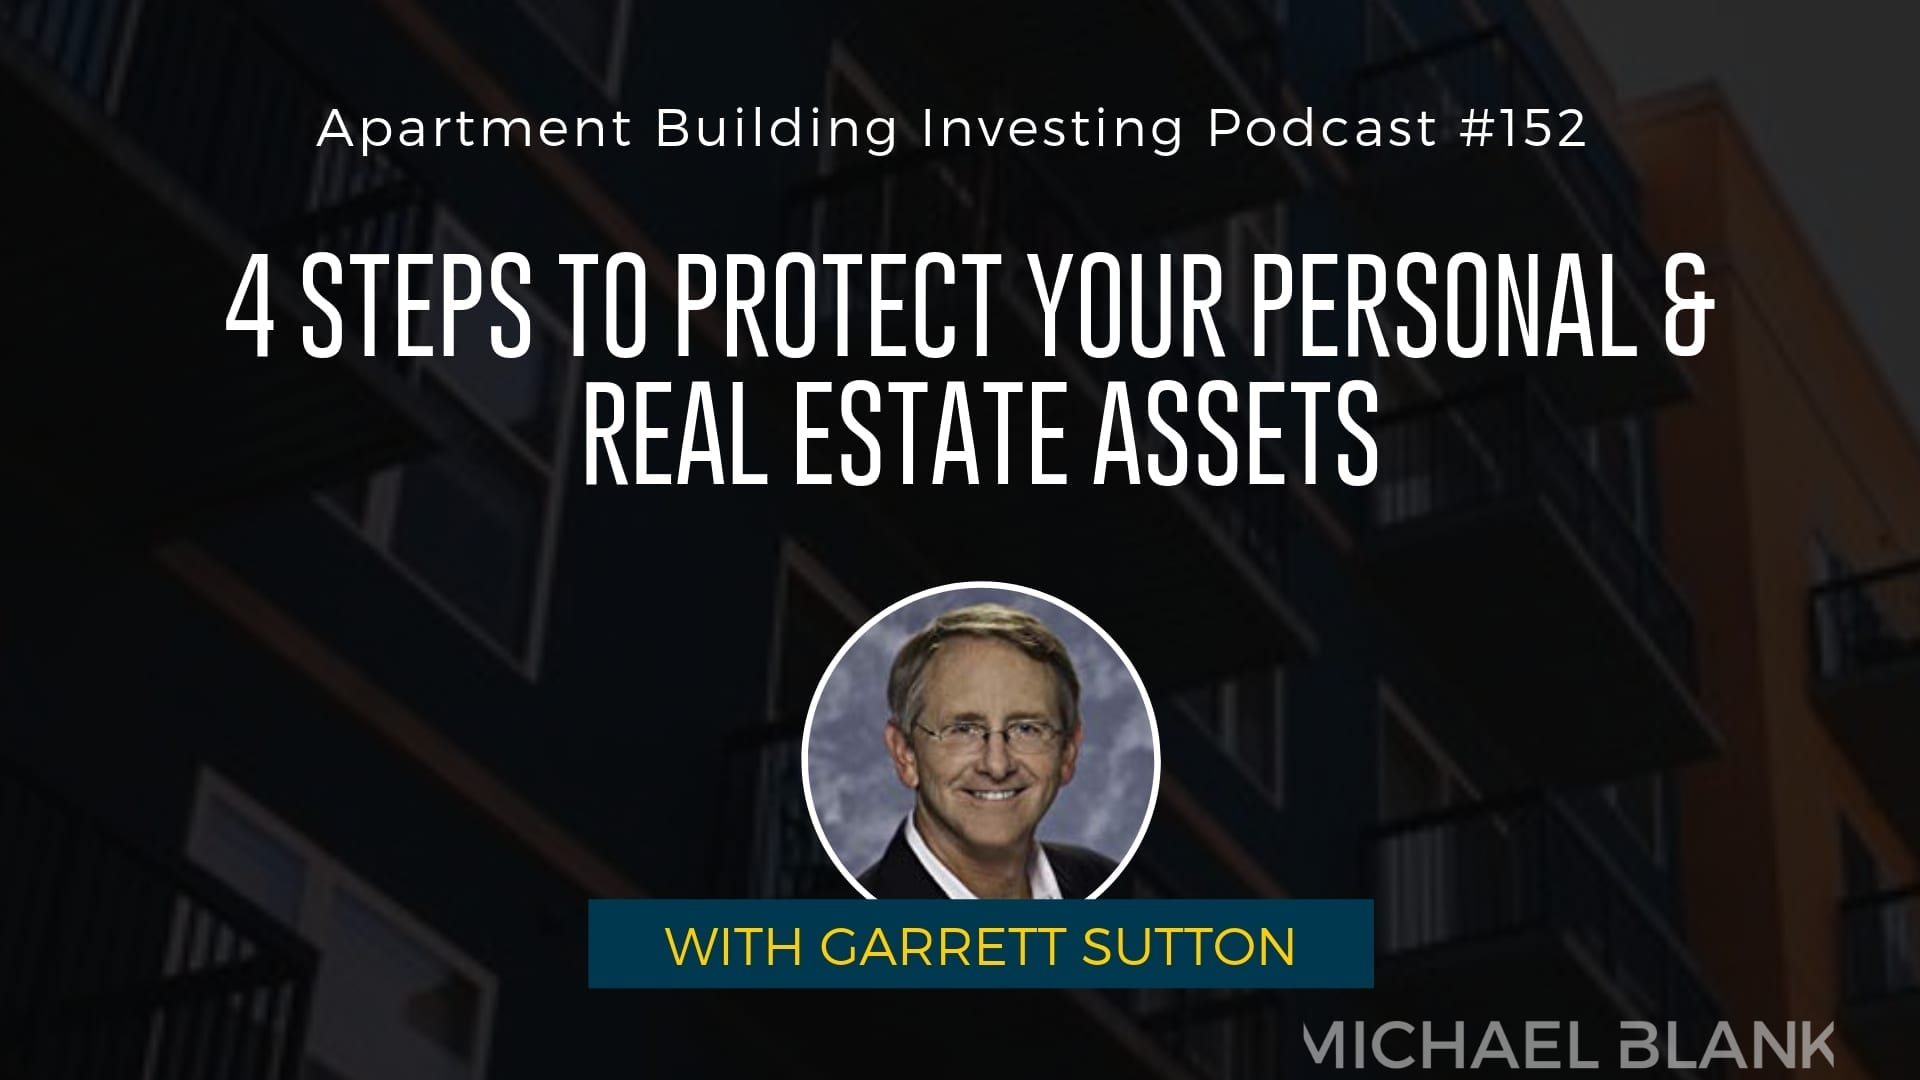 MB 152: 4 Steps to Protect Your Personal & Real Estate Assets – With Garrett Sutton